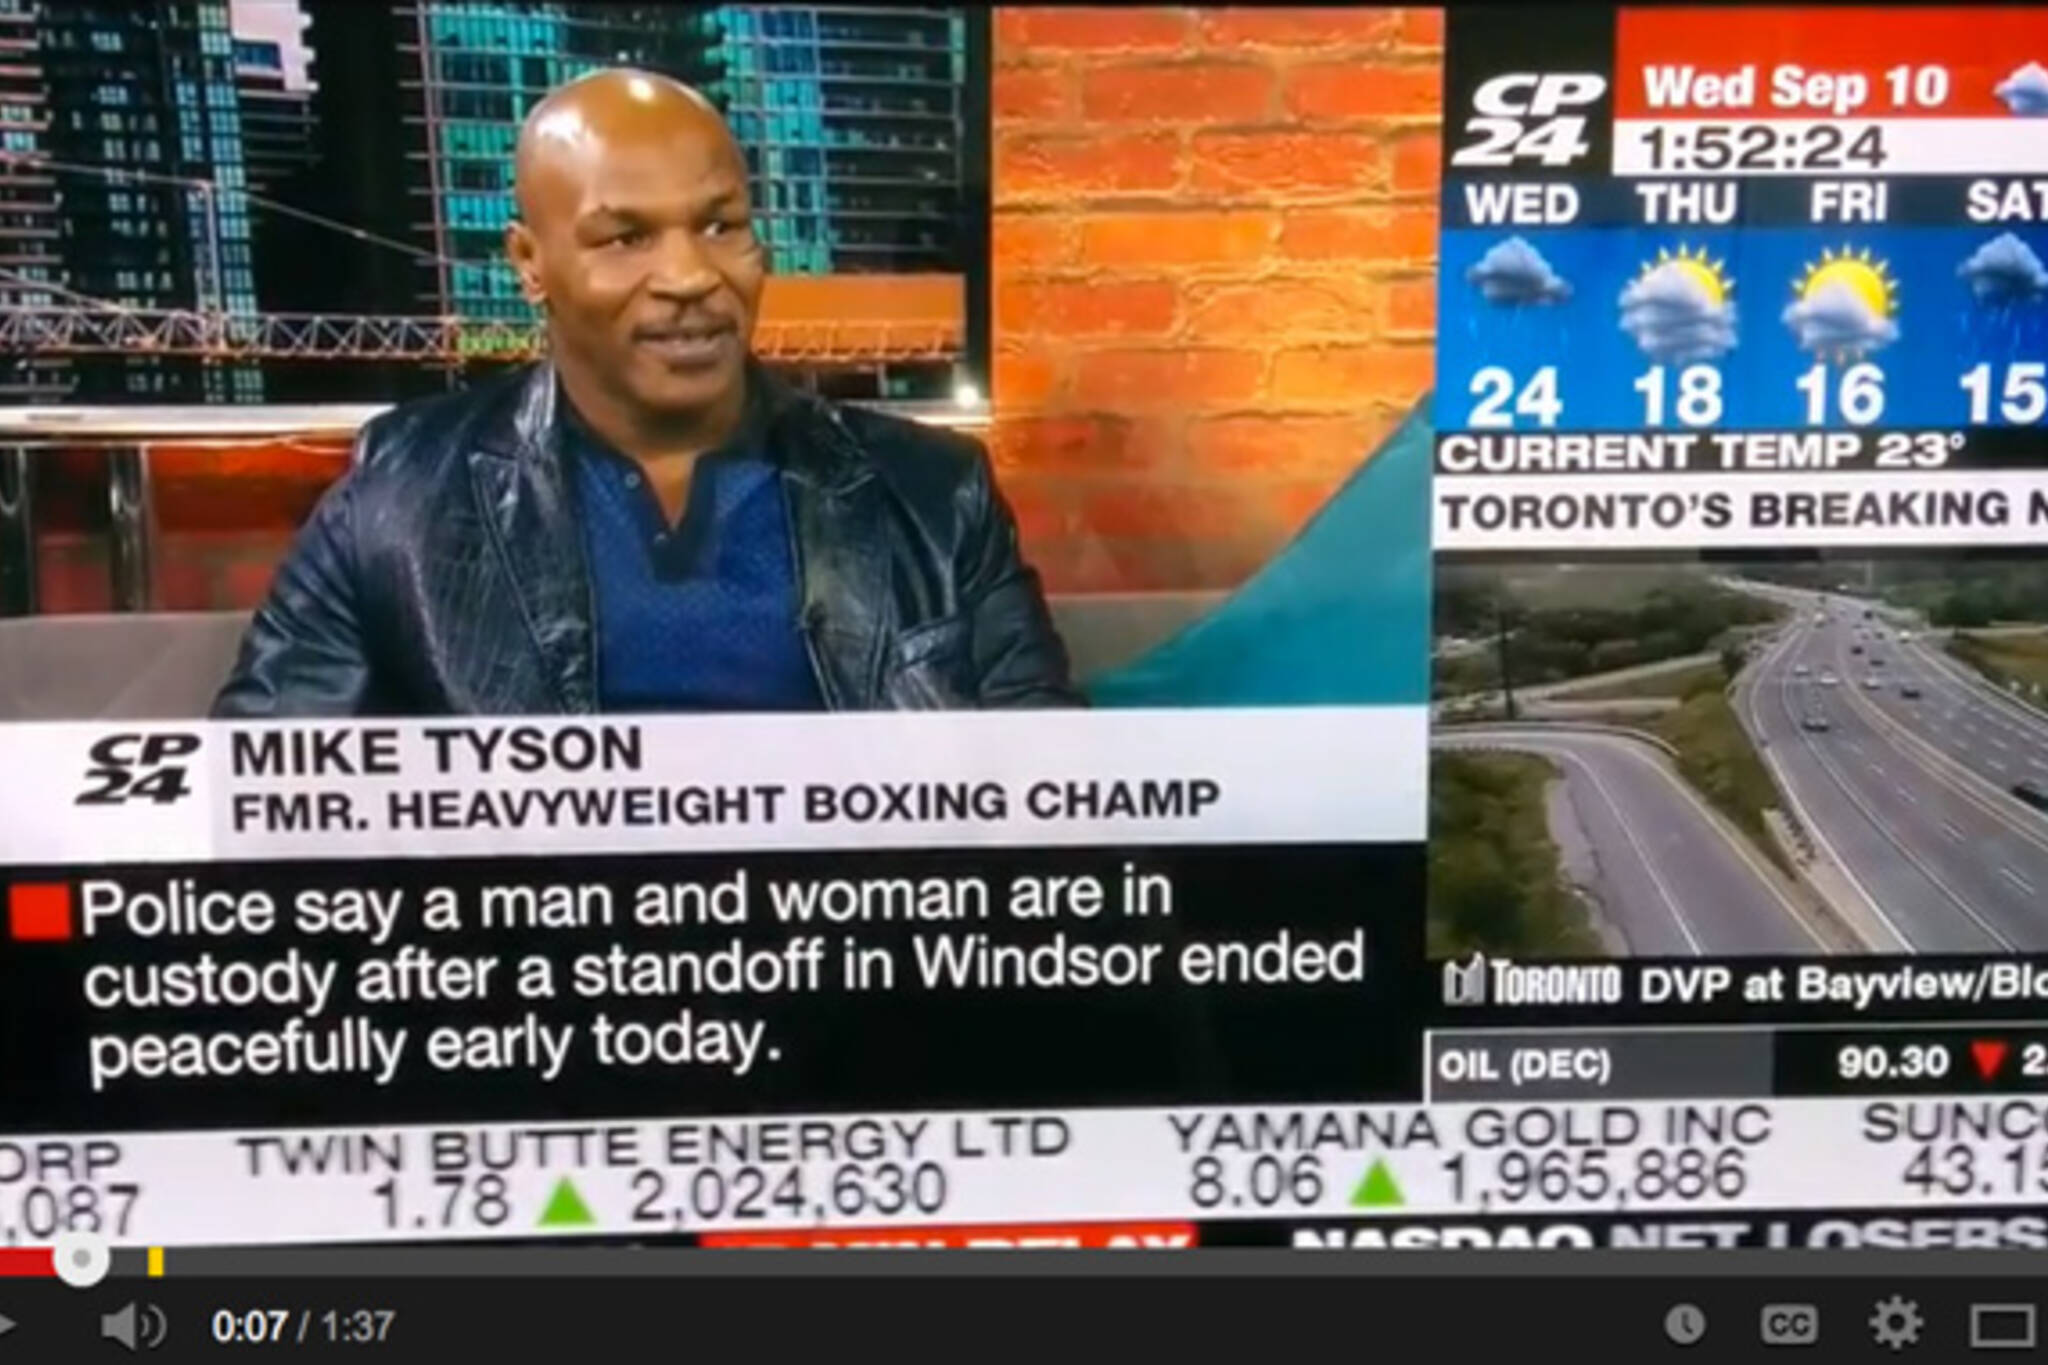 Mike Tyson freaks out live on air on CP24